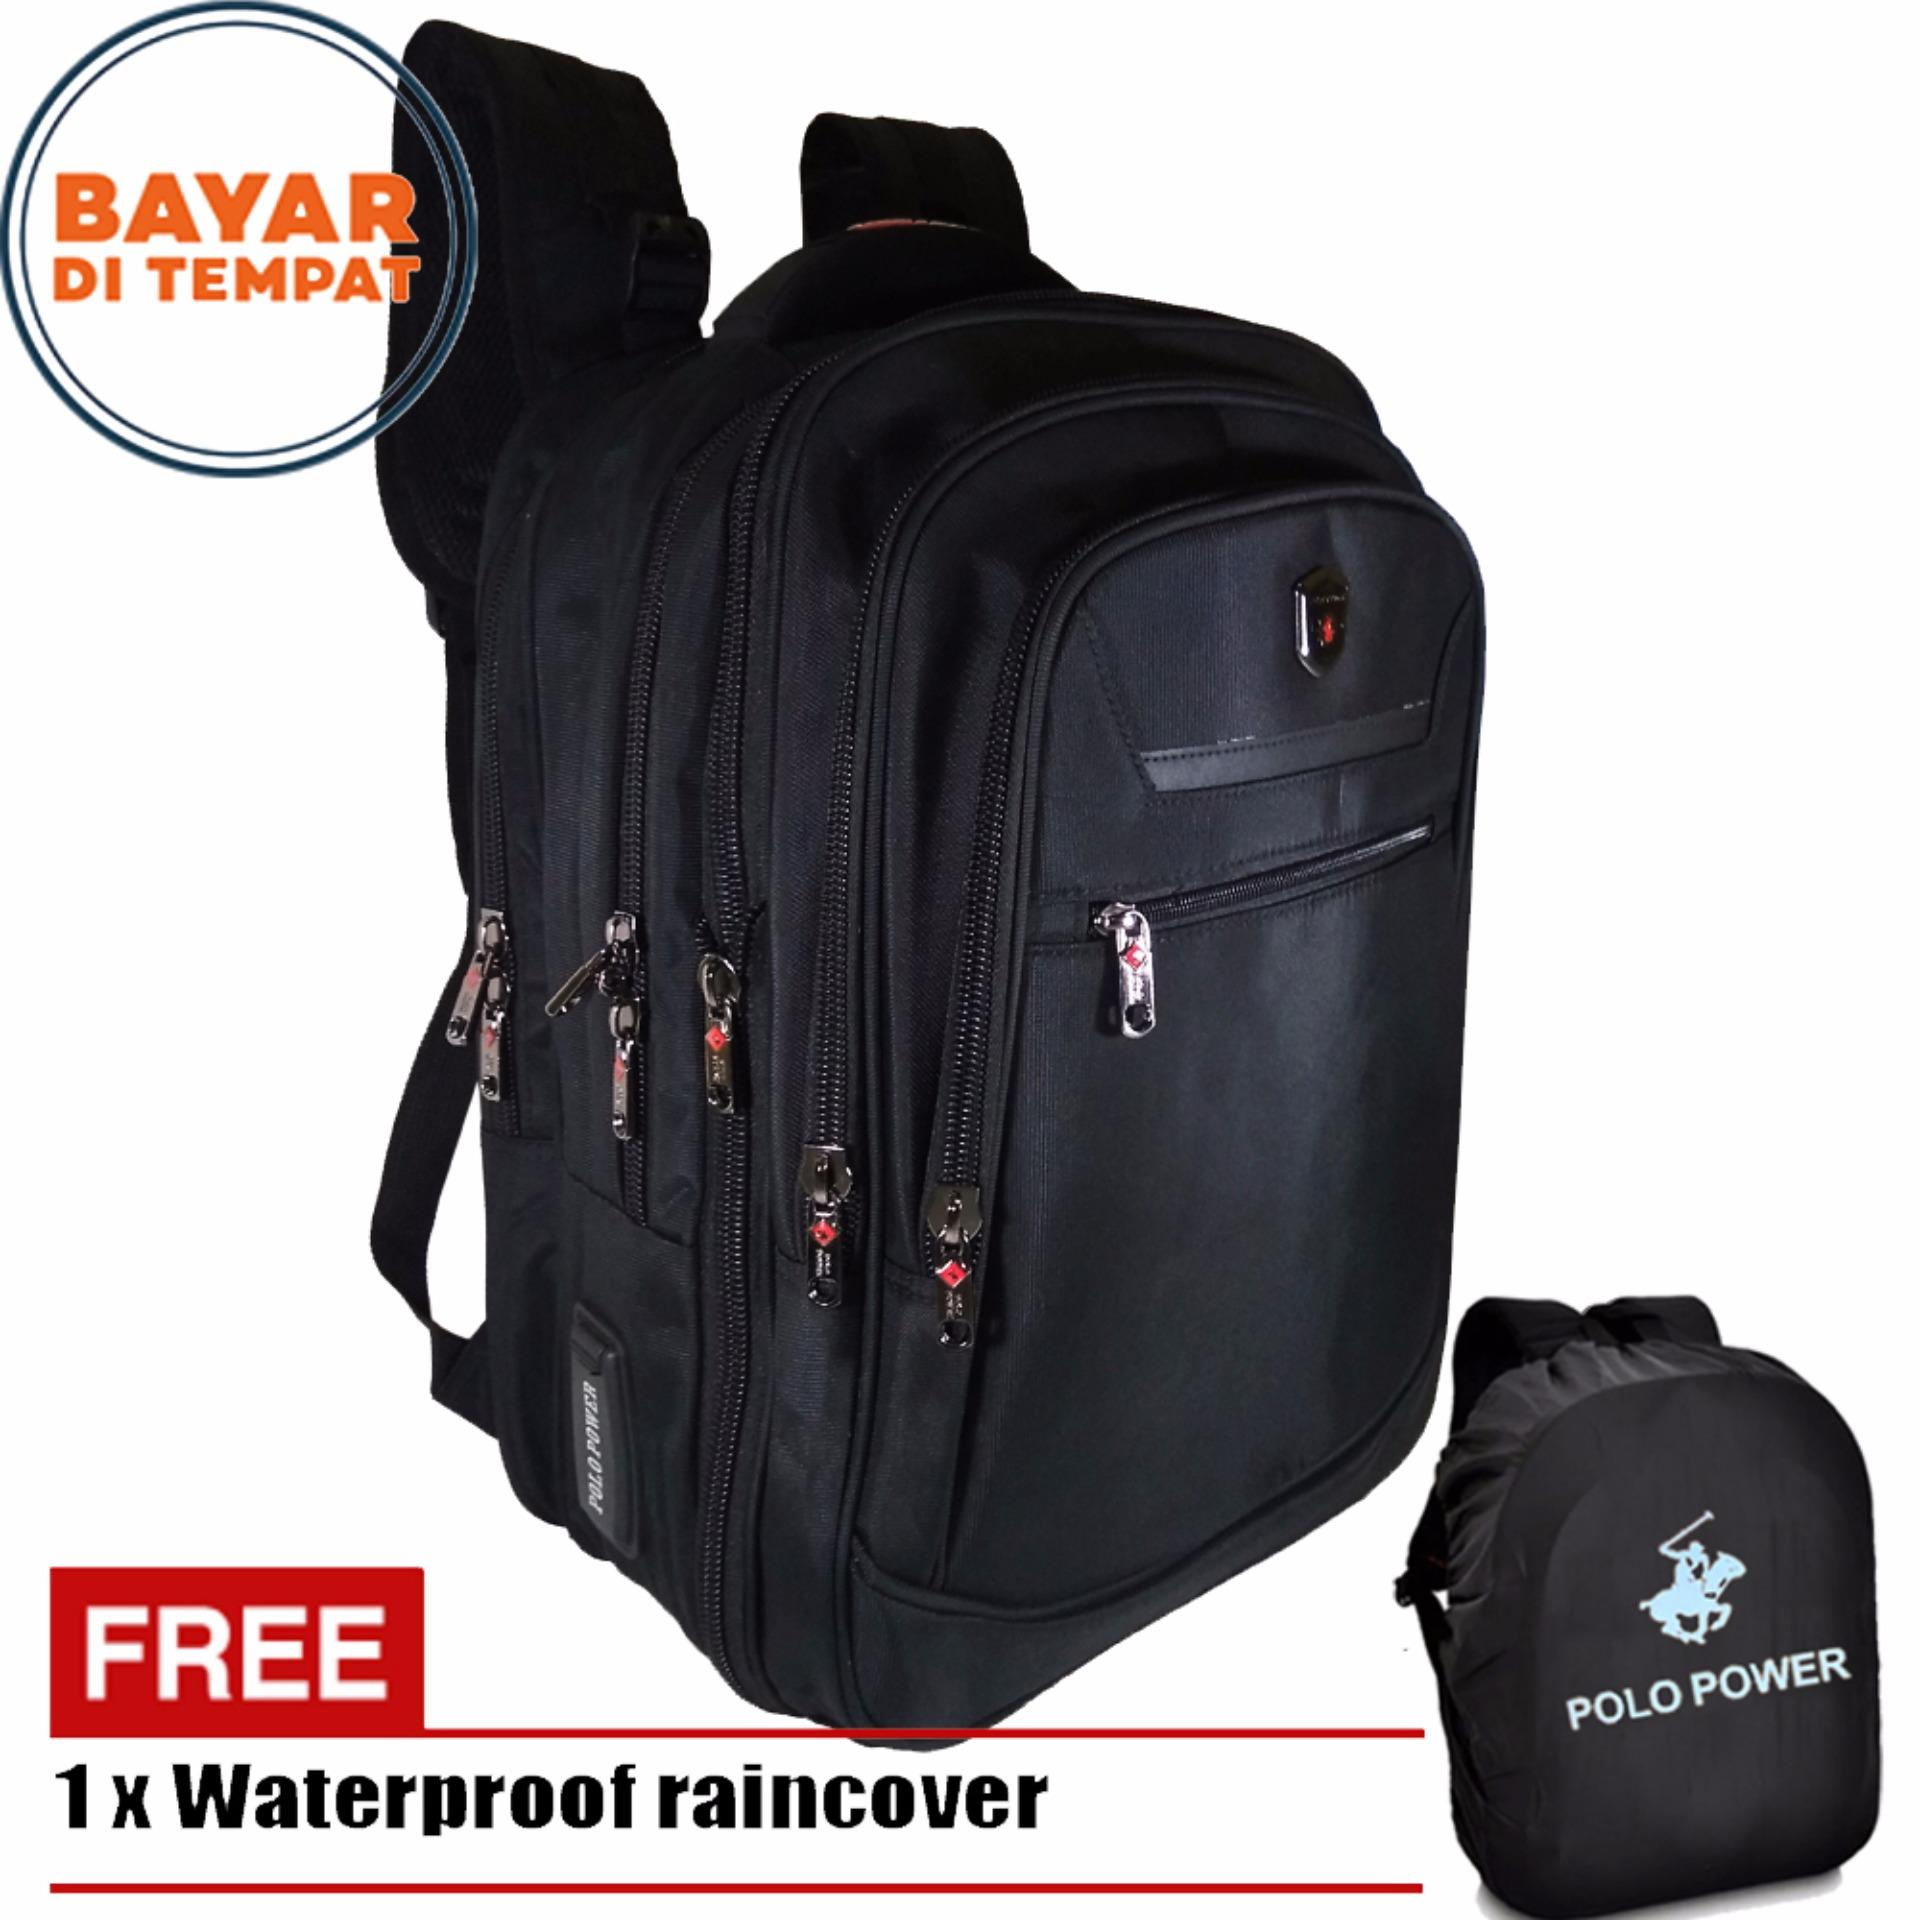 Toko Jual Polo Power Tas Ransel Pria 18 Inchi Expandable 185003 Highest Spec Polo Backpack Import Original Black Raincover